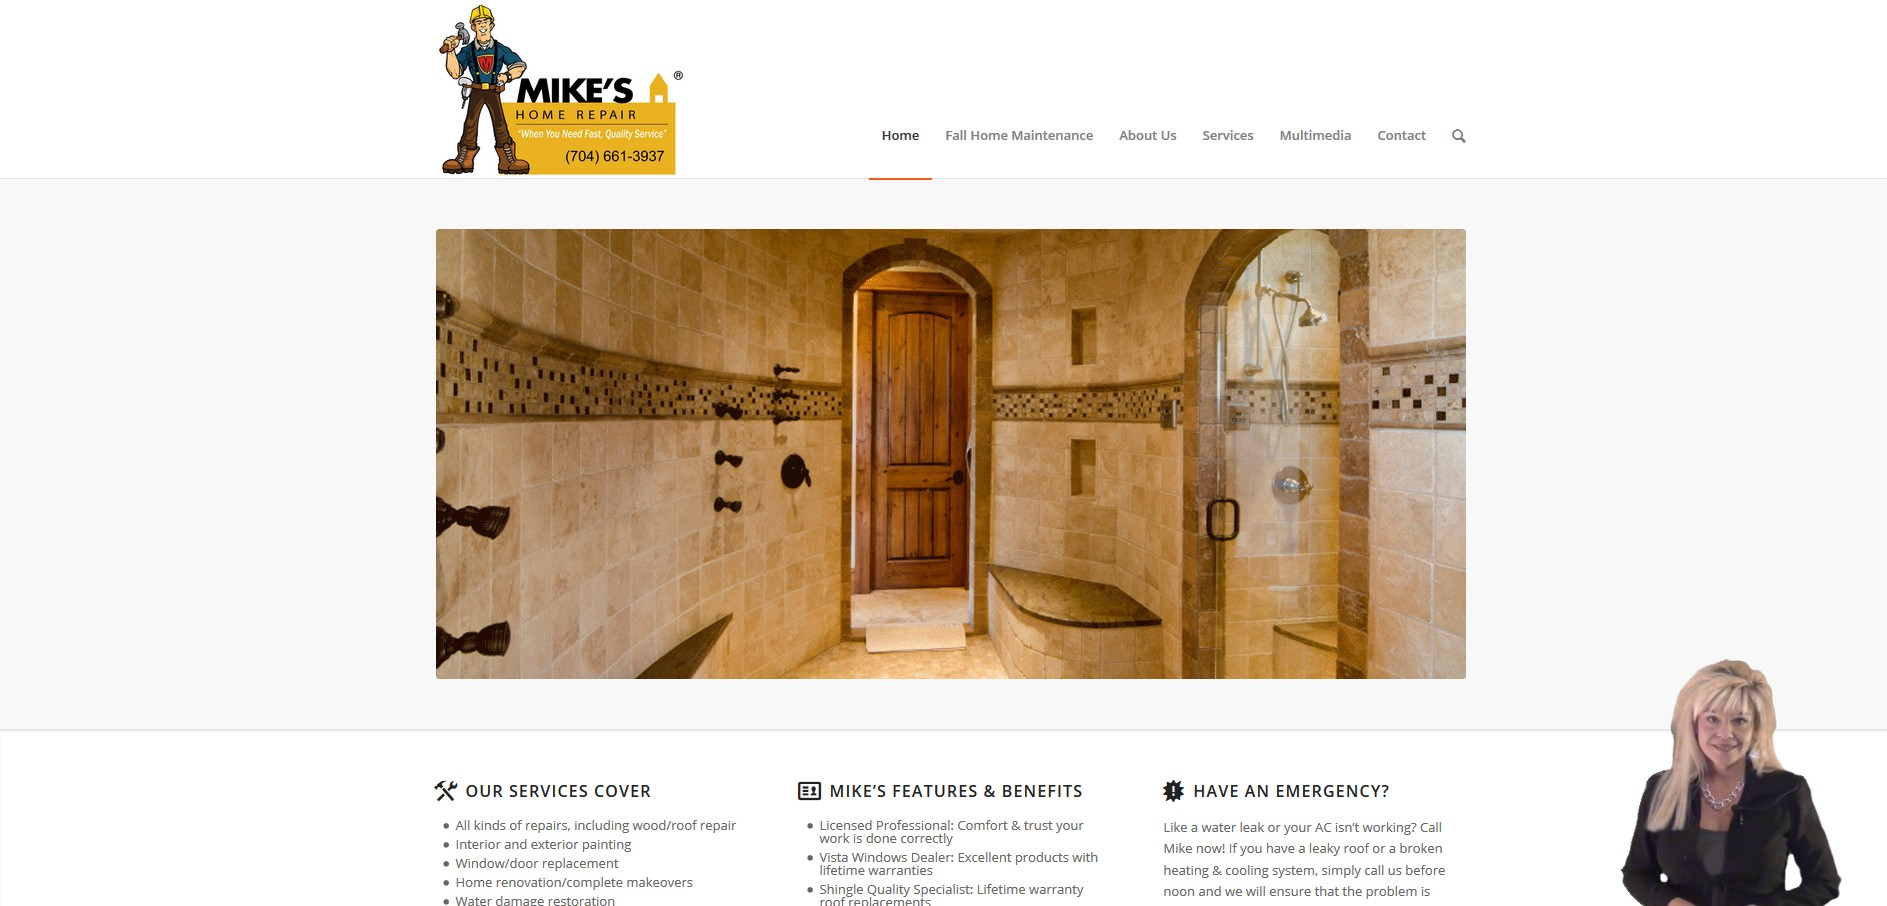 mccrossen marketing client mikes home repairs home page